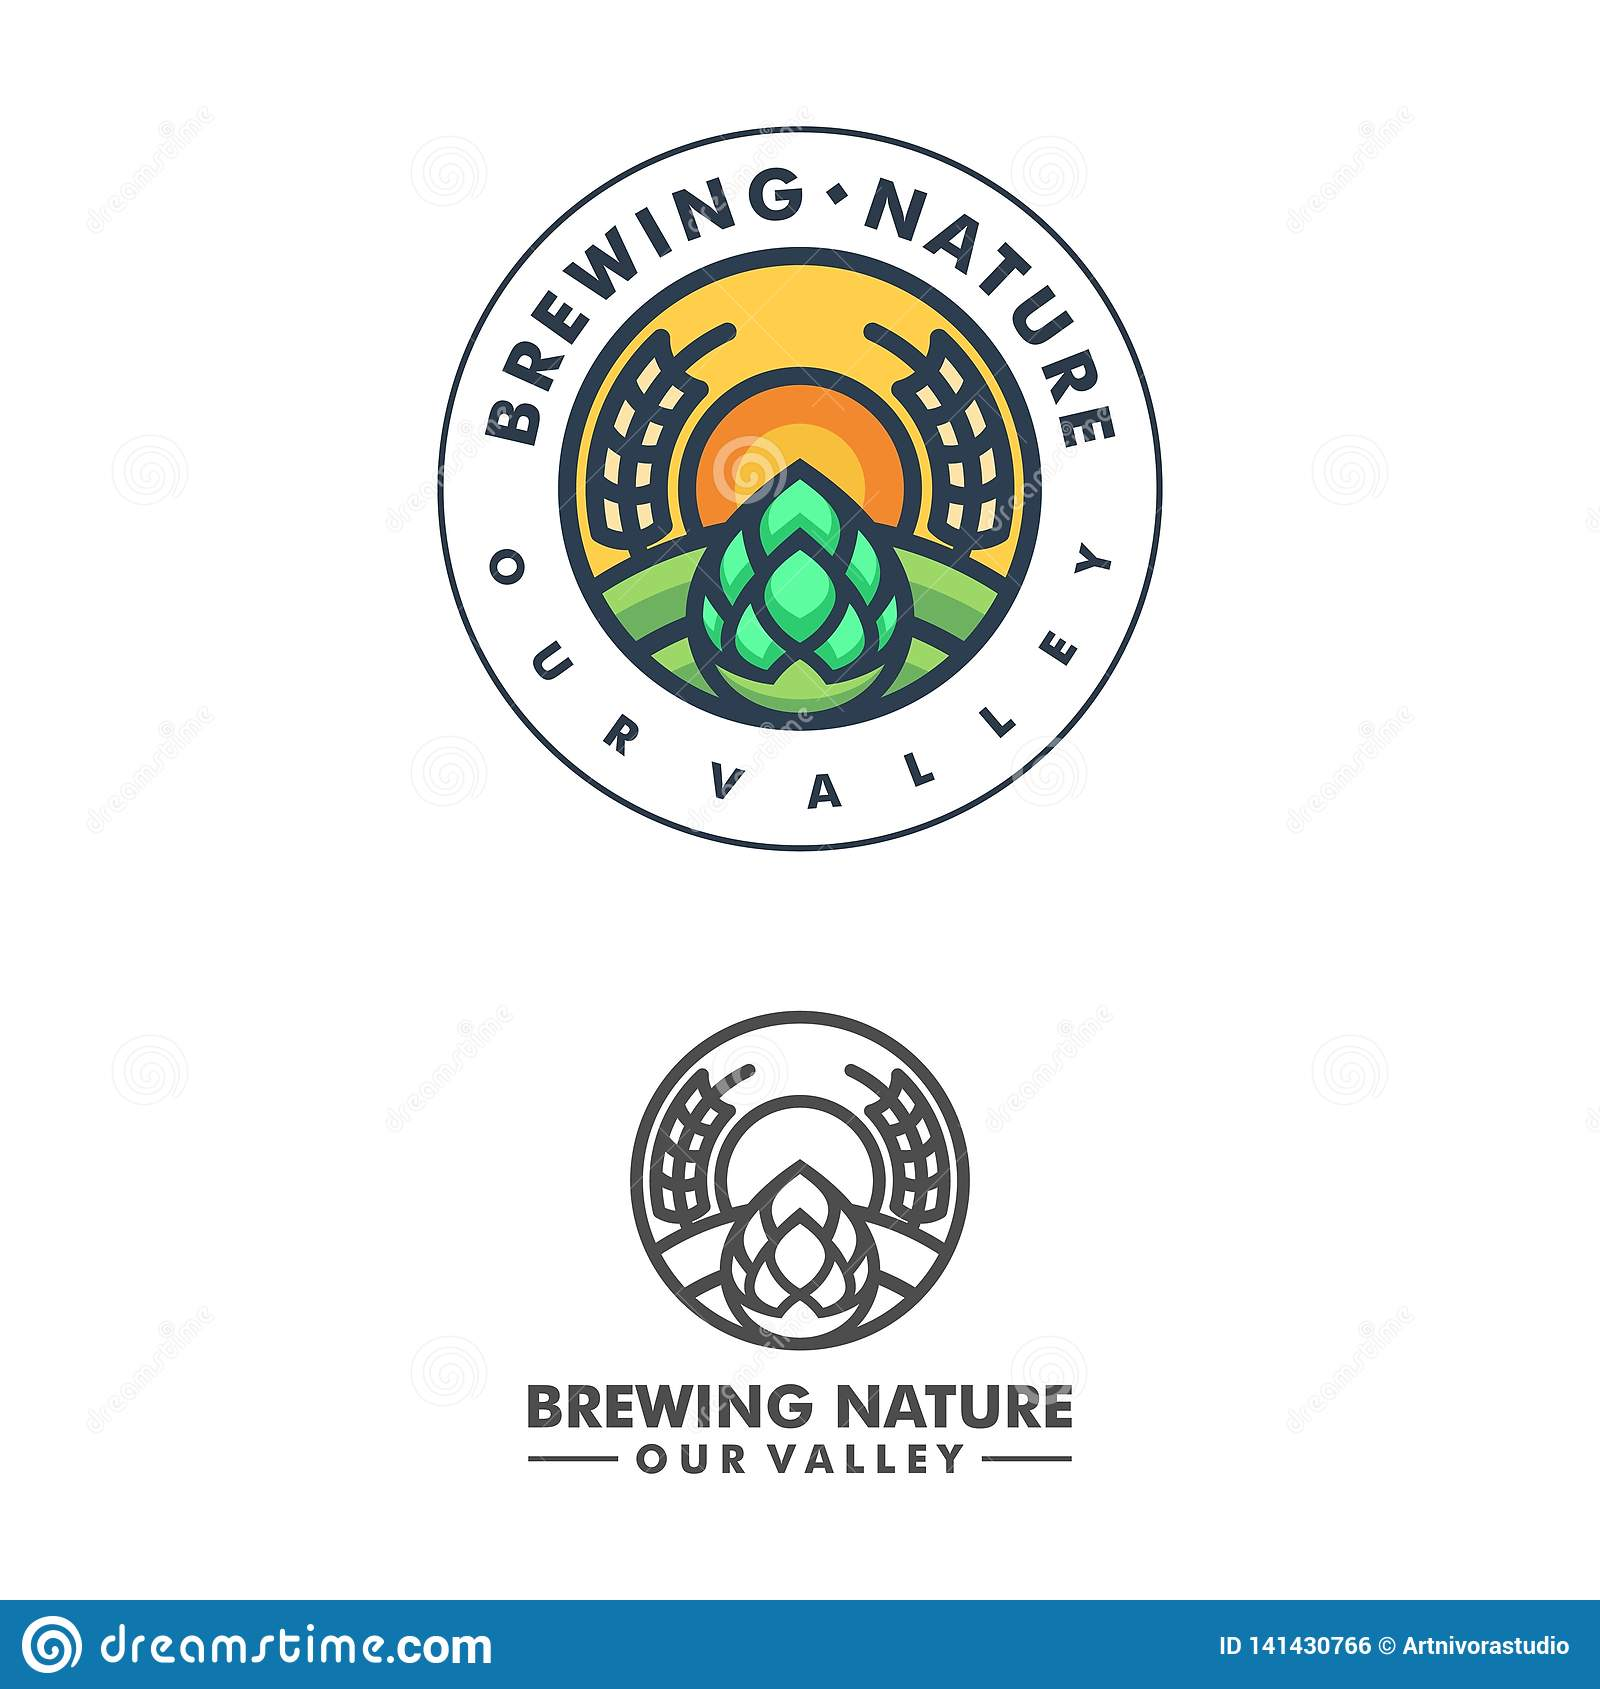 Abstract Brewing Concept illustration vector Design template